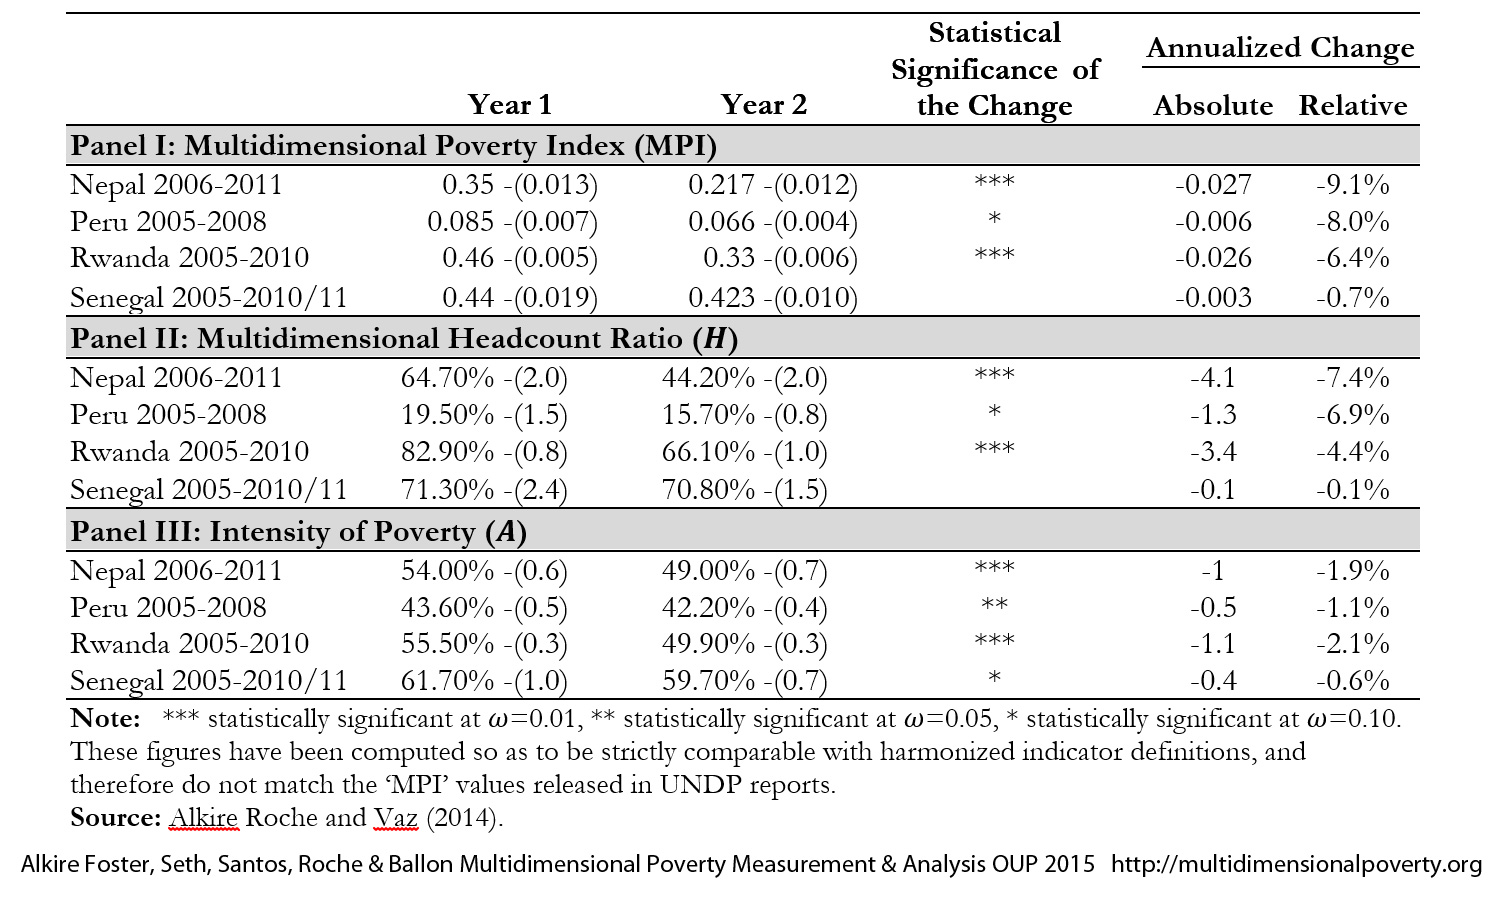 an analysis of poverty This paper analyses urban poverty in ethiopia using two rounds of  this type of  analysis helps to identify why poverty has changed over time and develop an.